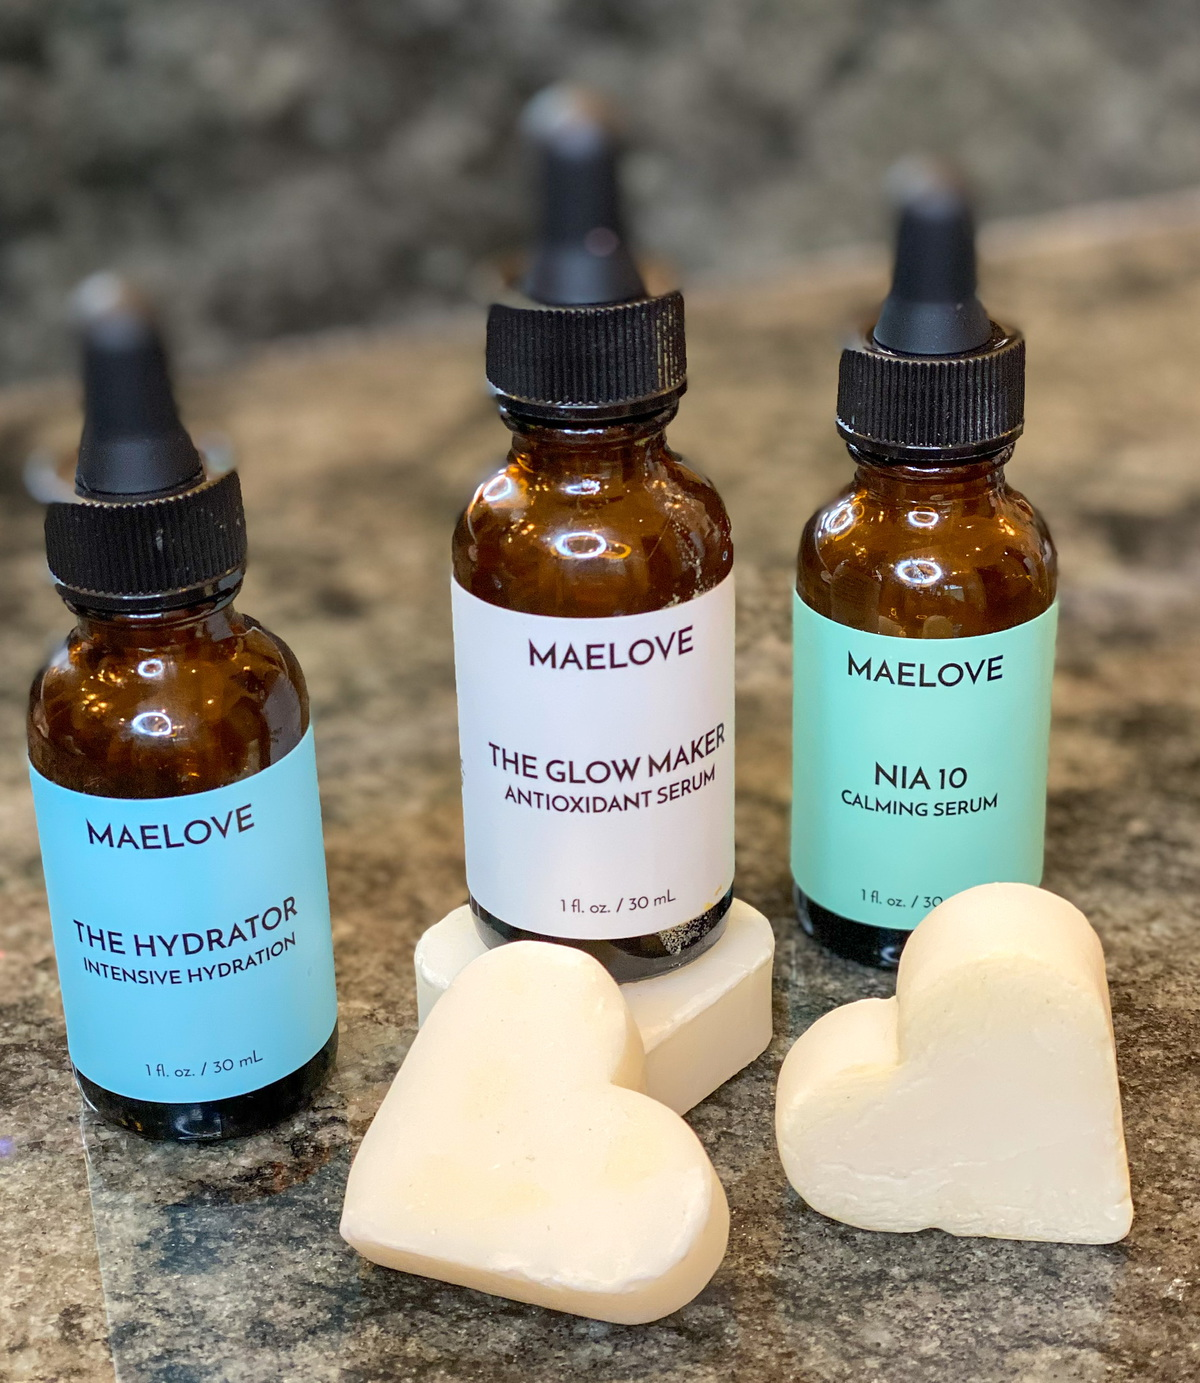 maelove skincare serums on countertop with white hearts